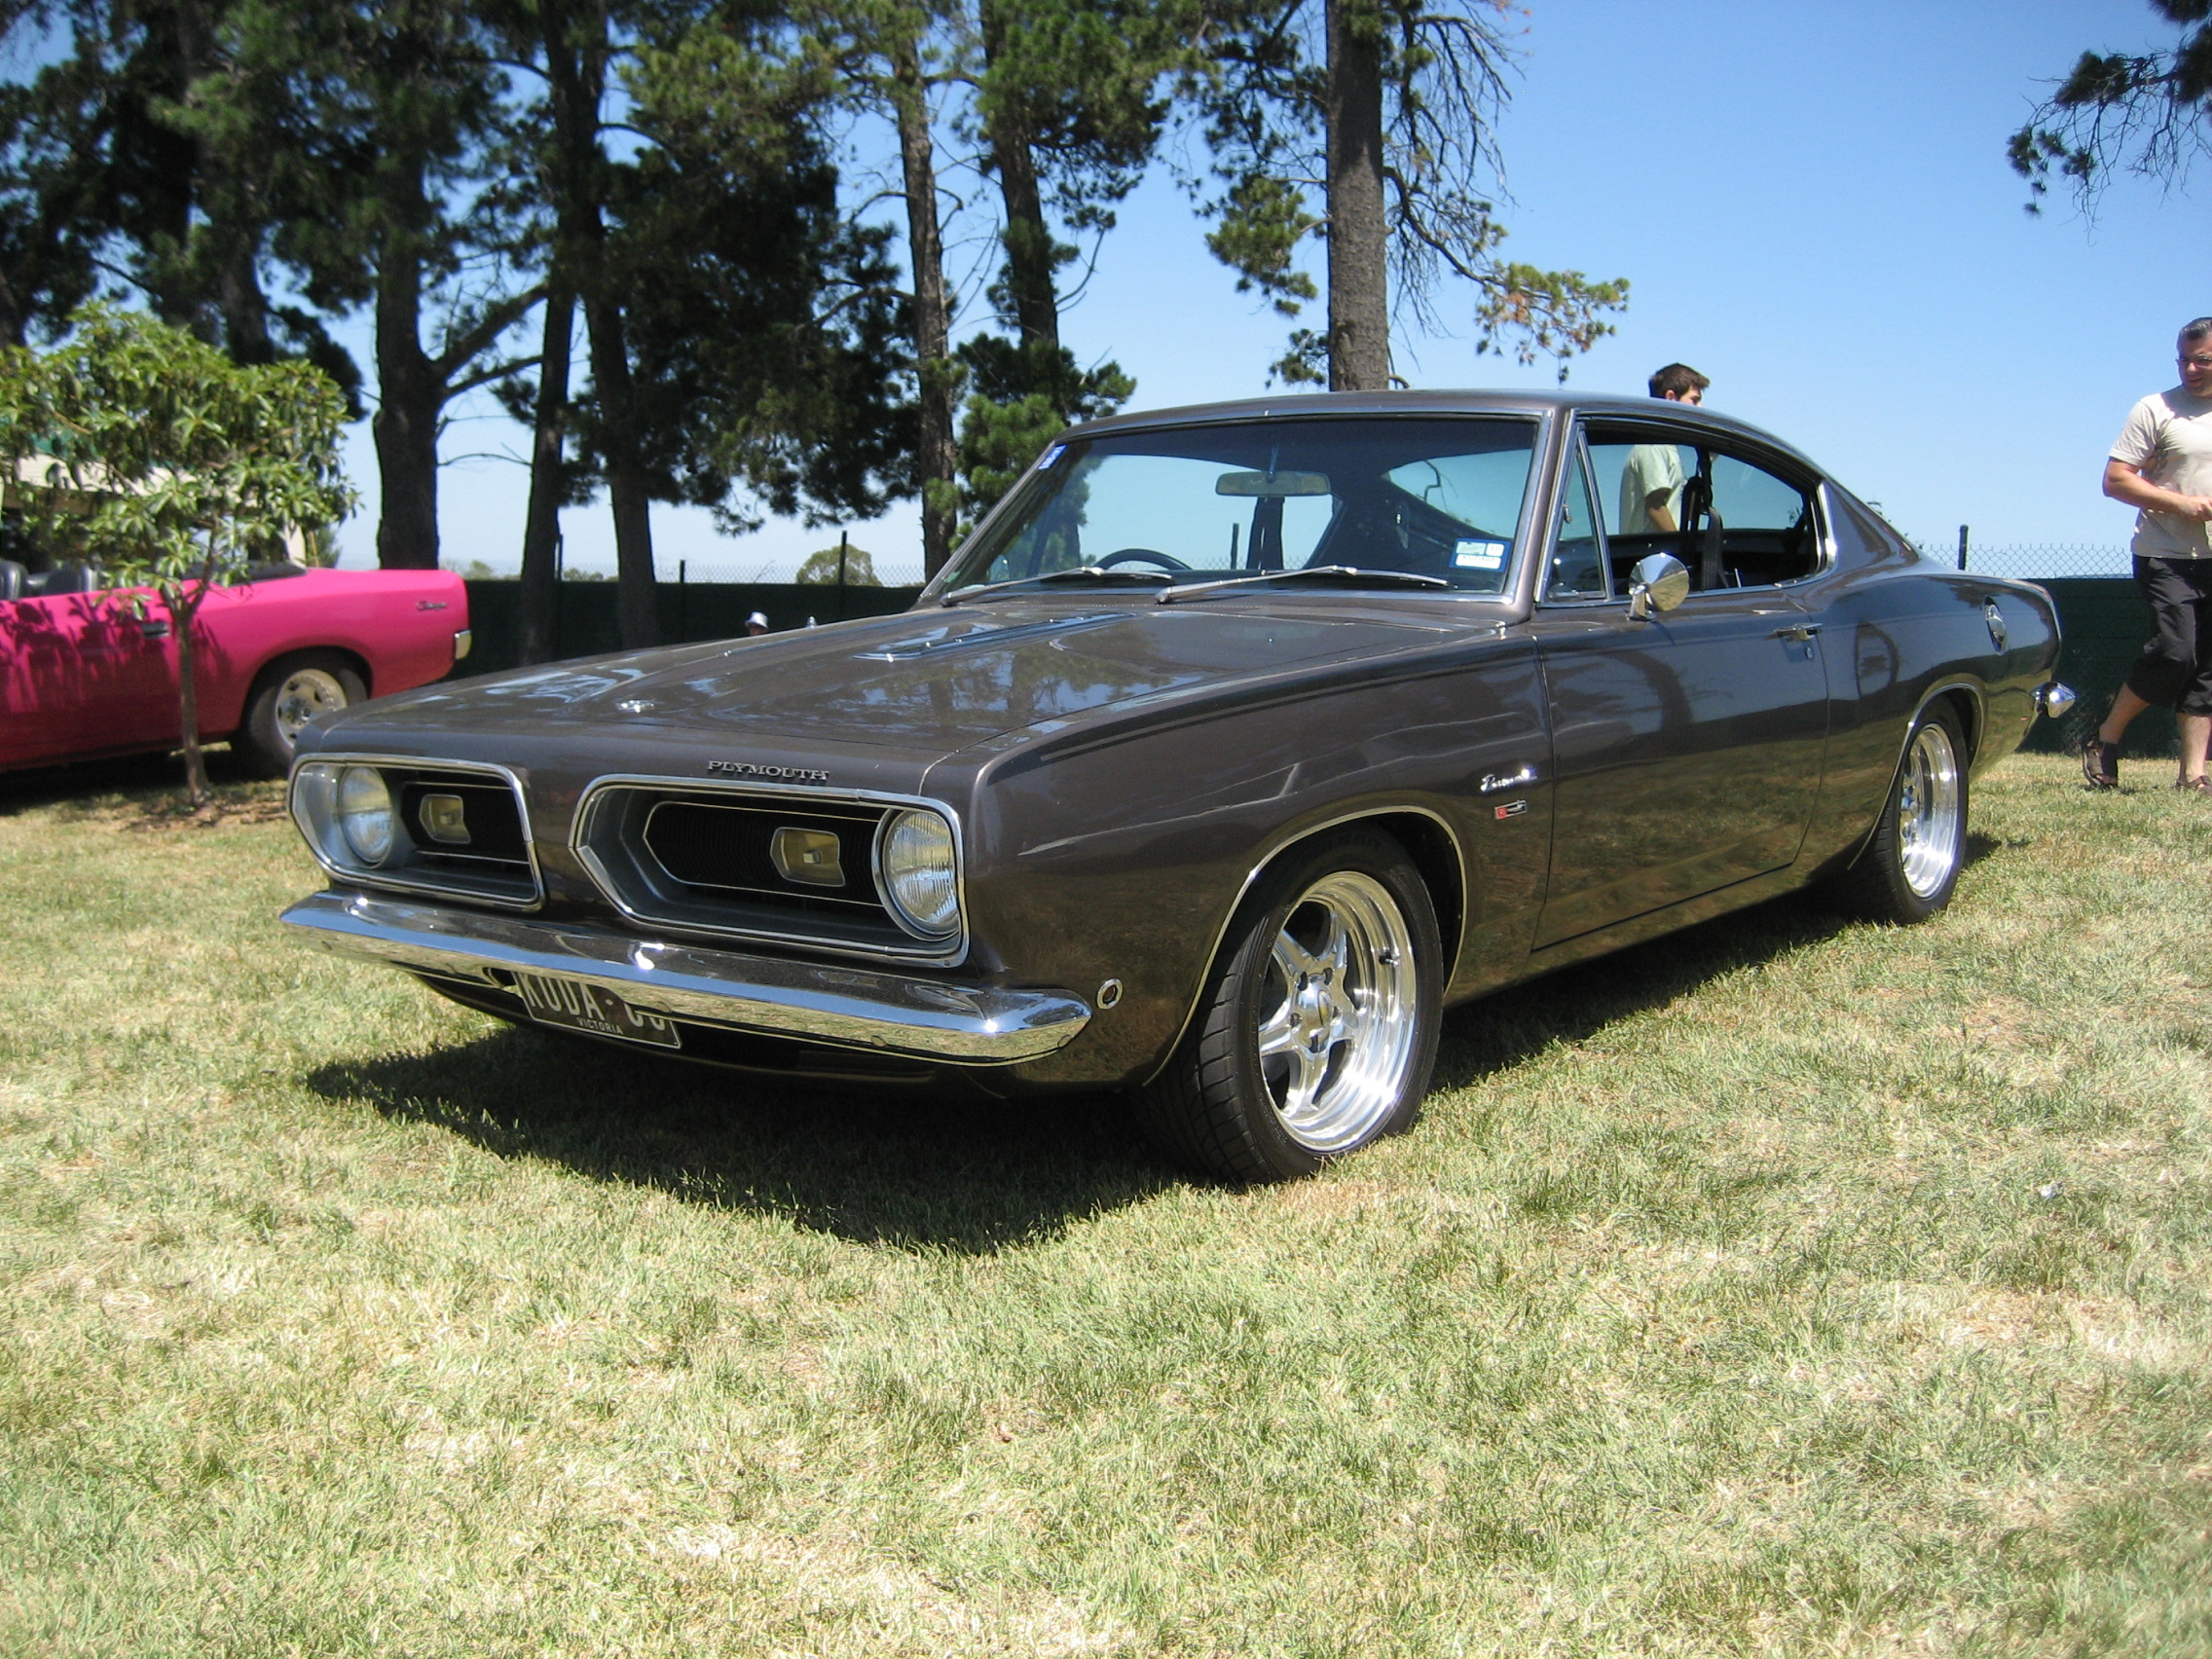 File:1968 Plymouth Barracuda.jpg